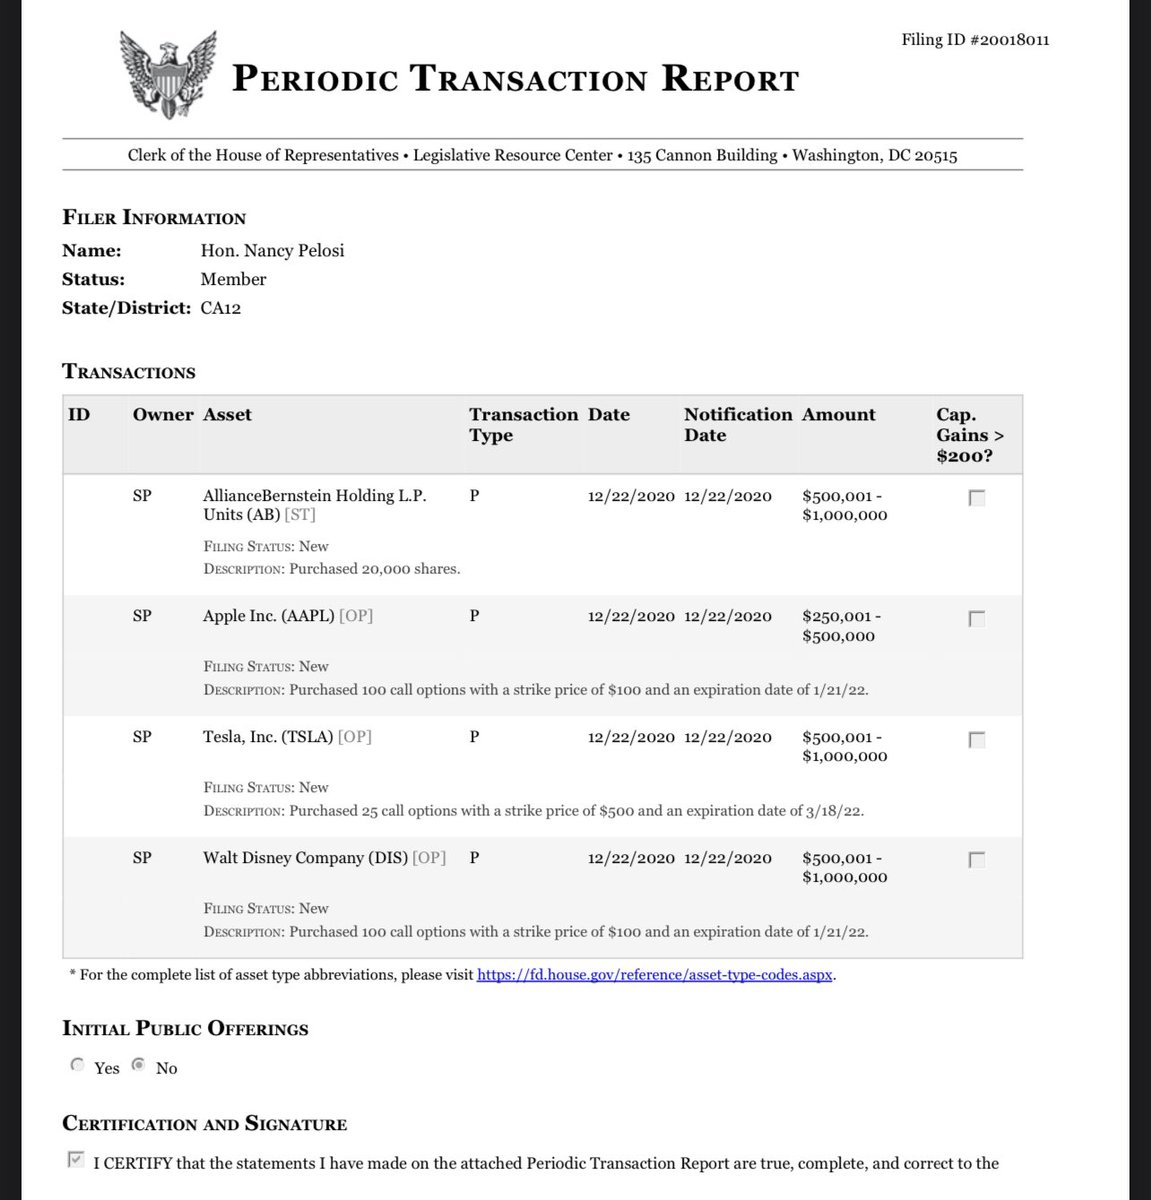 NEWS: In a new disclosure filing, it was revealed that House Speaker Nancy Pelosi on Dec 22, 2020 bought 25 $TSLA call options with a $500 strike price and an expiration date of 3/12/2022. She paid between $500k-$1M for the options.